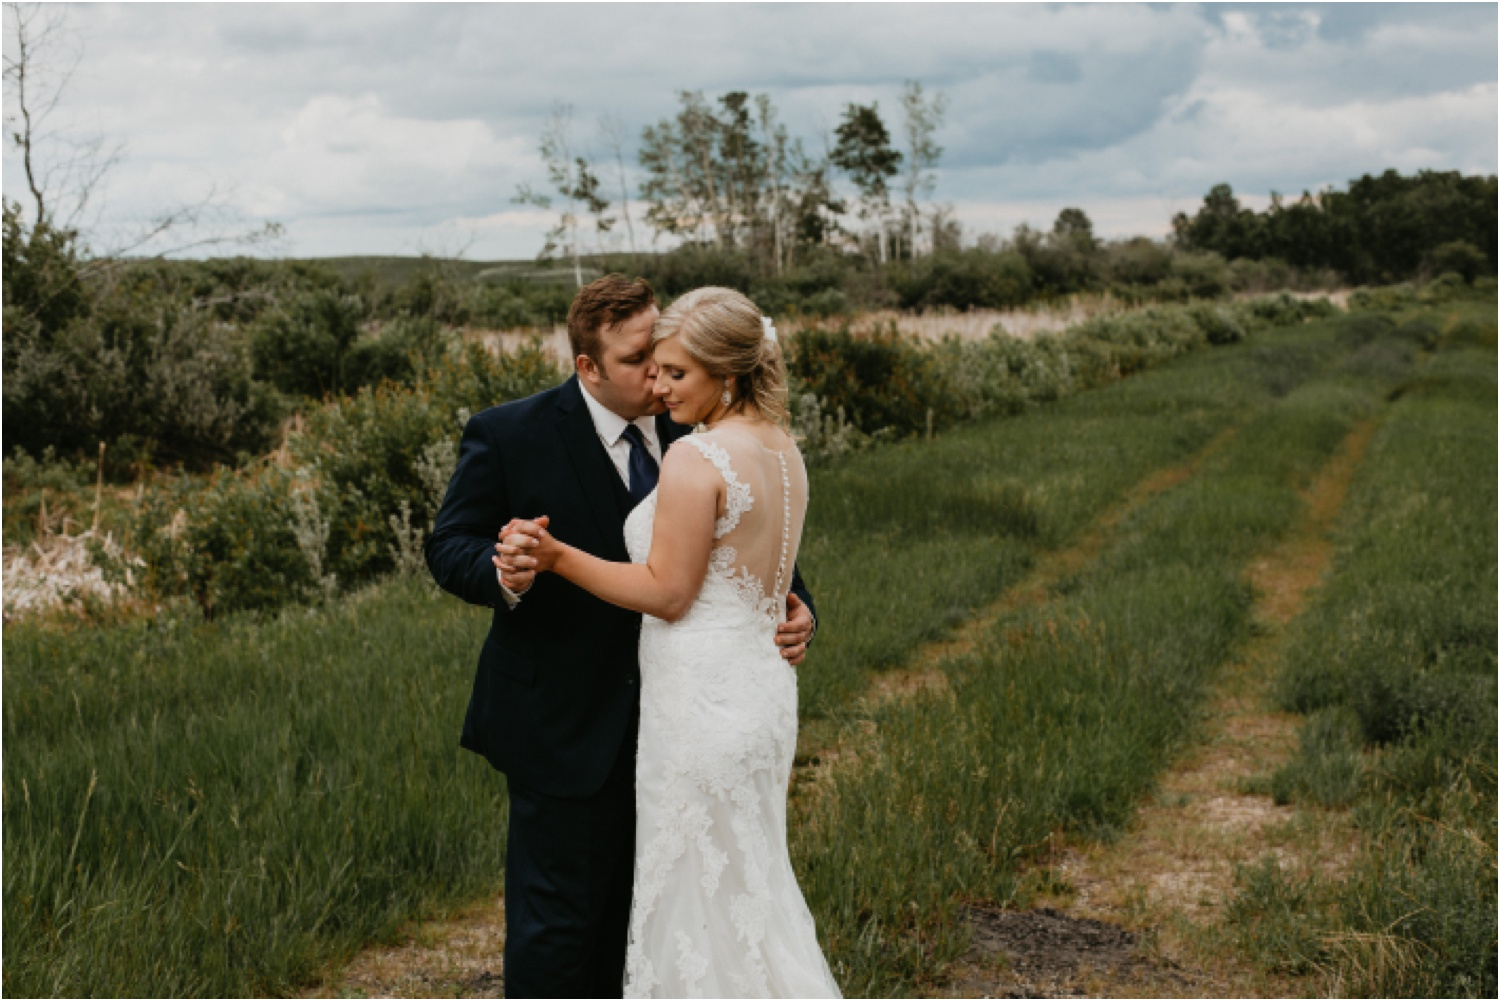 Kailey_Carter_Saskatchewan_Wedding (460 of 727).jpg